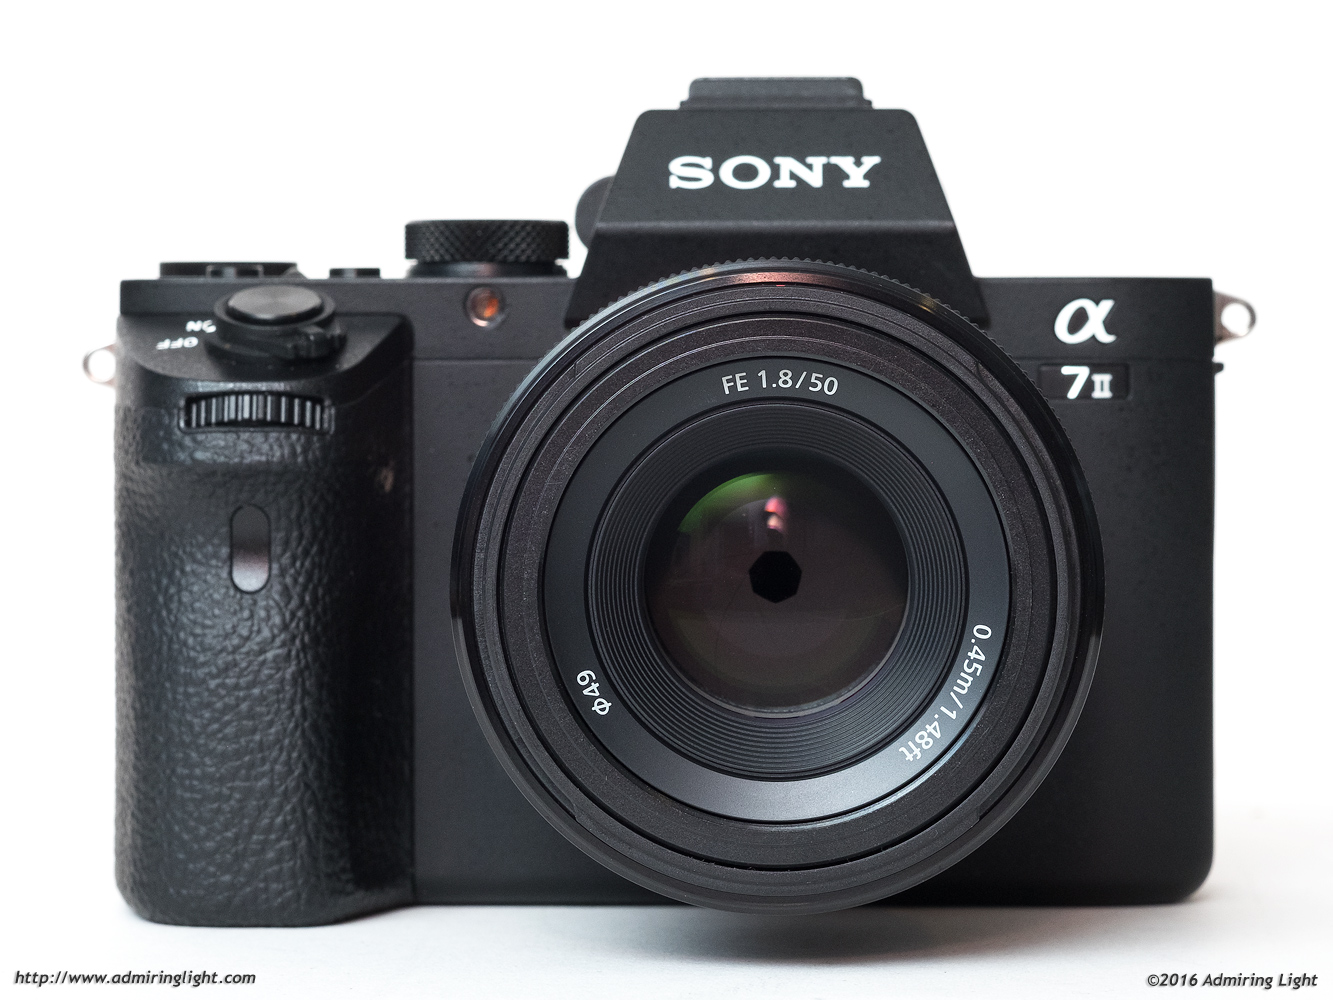 The Sony FE 50mm f/1.8 on the Sony A7 II